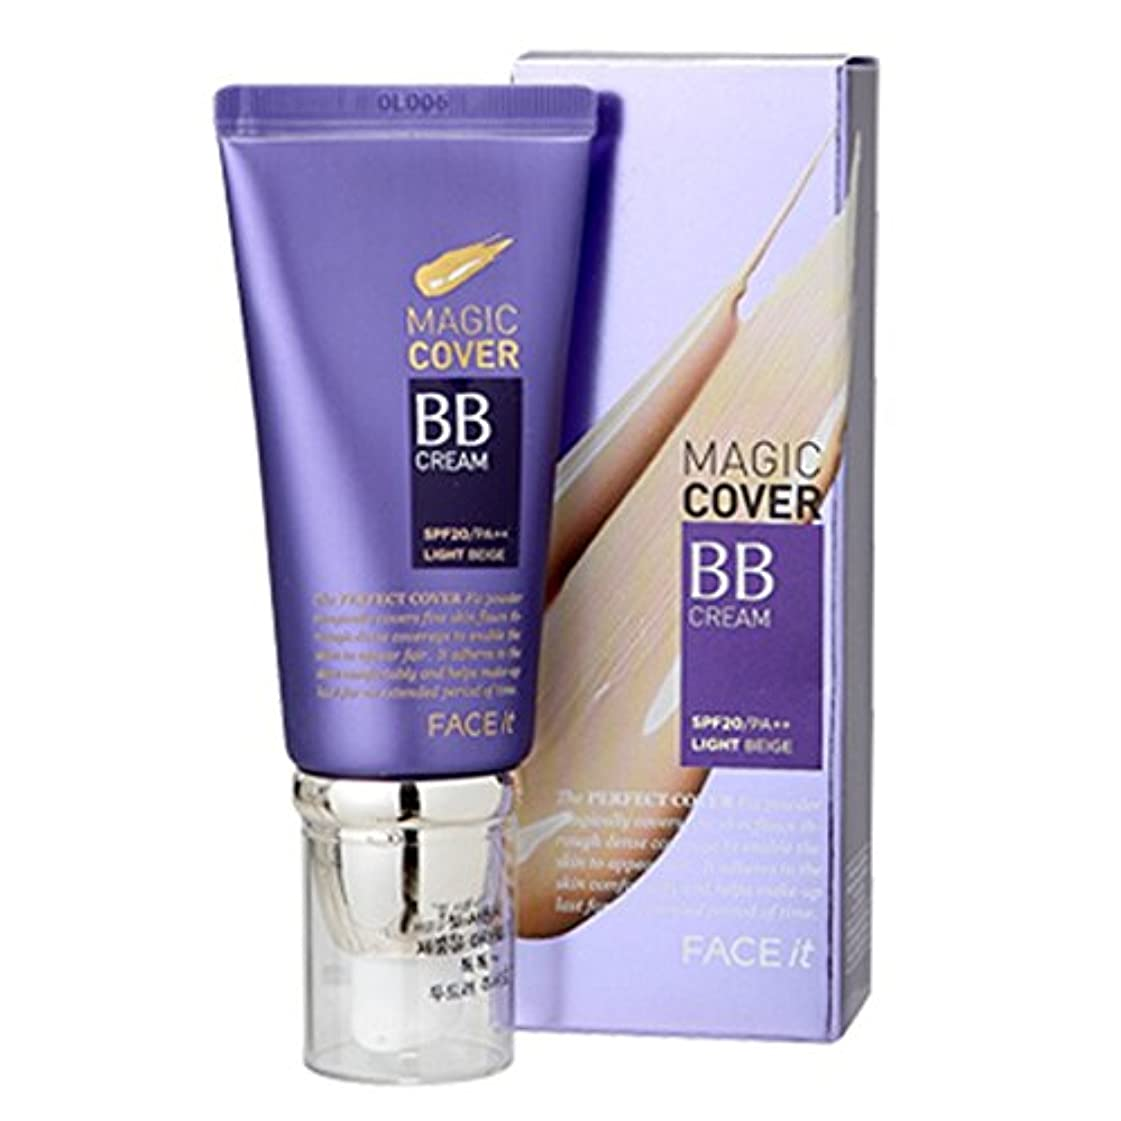 ねばねば仲介者消去ザフェイスショップ The Face Shop Face It Magic Cover BB Cream 45ml (02 Natural Beige)